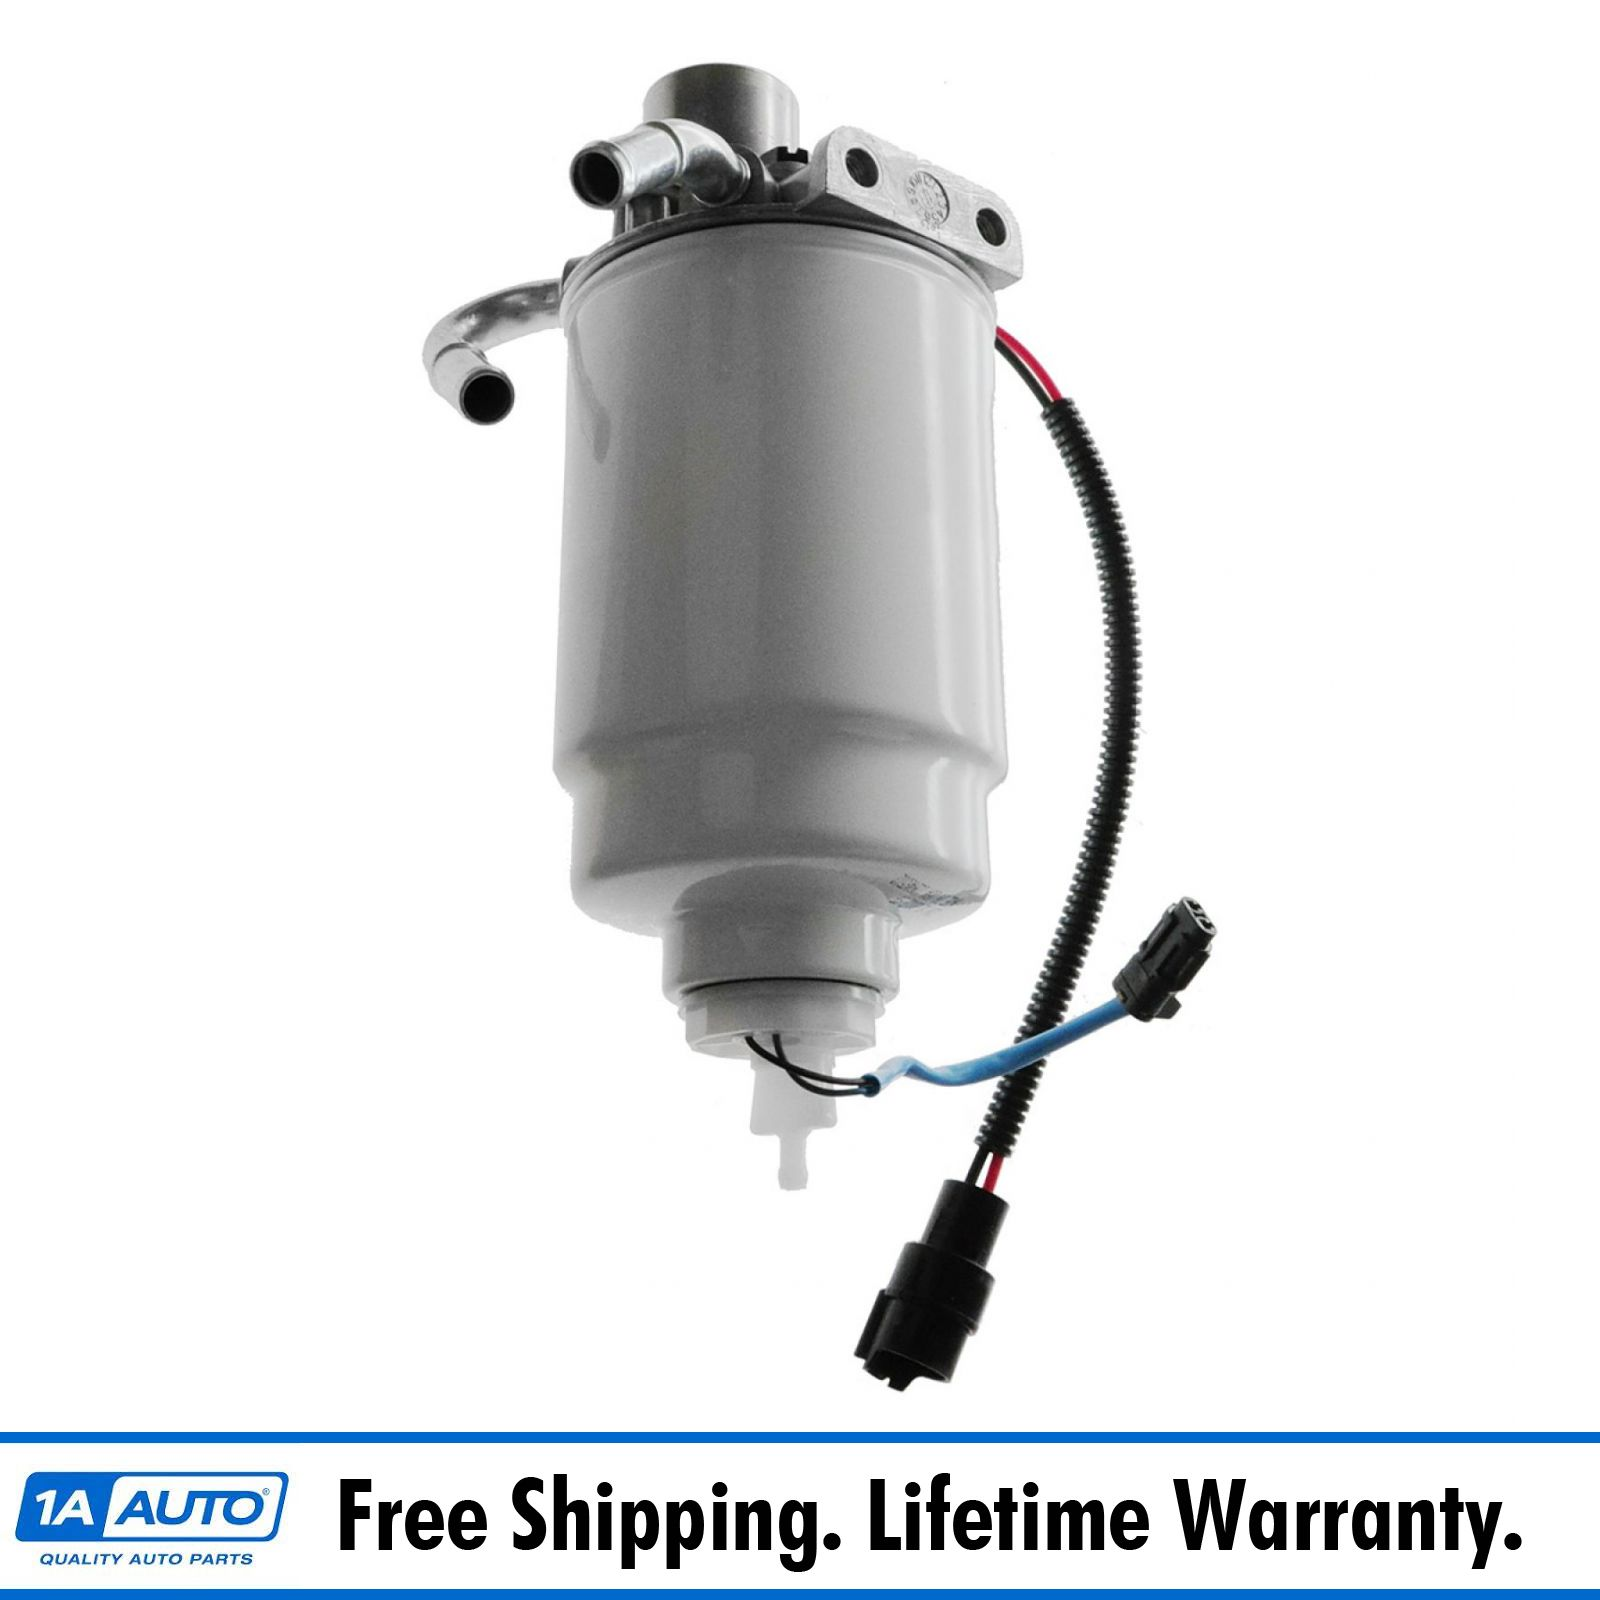 hight resolution of ac delco 12642623 diesel fuel filter housing for silverado sierraac delco 12642623 diesel fuel filter housing